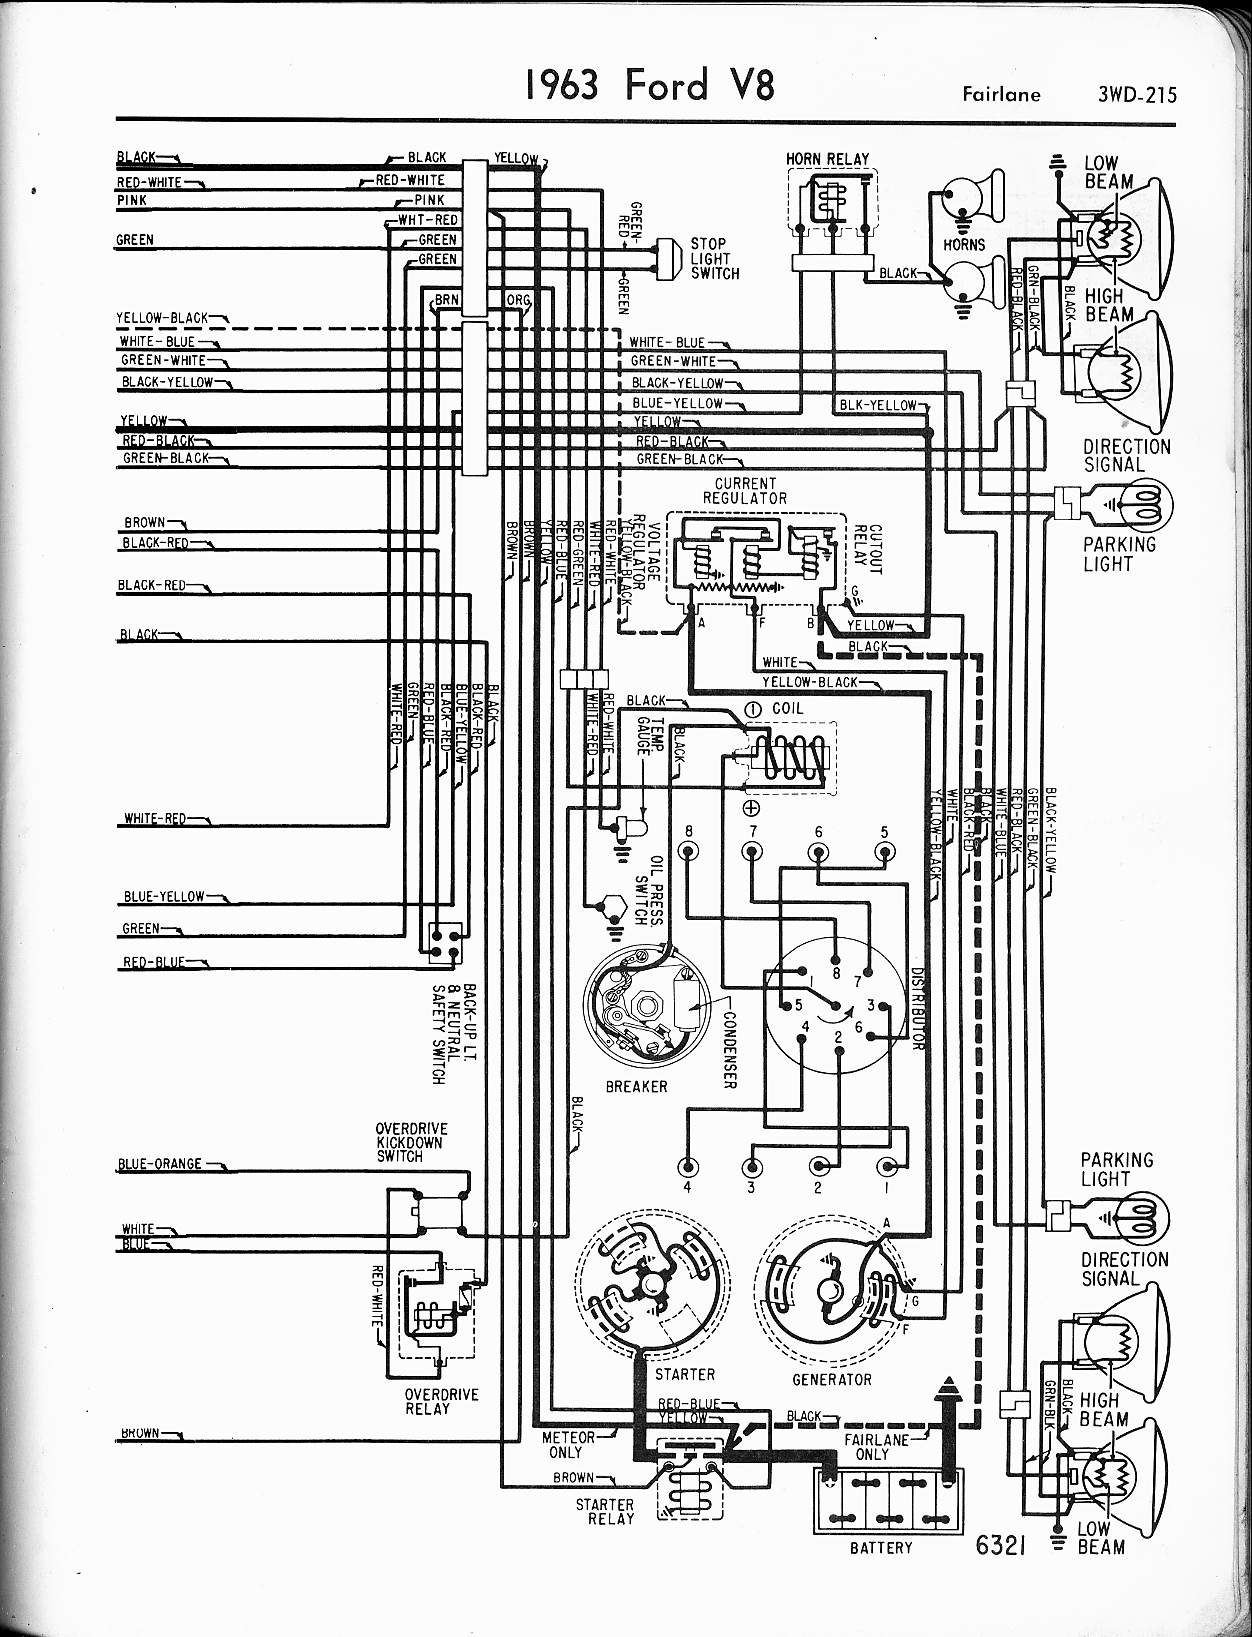 1956 Ford Thunderbird Ignition Switch Wiring Diagram 1954 Blinker Wire 57 65 Diagrams Rh Oldcarmanualproject Com F100 1955 Turn Signal